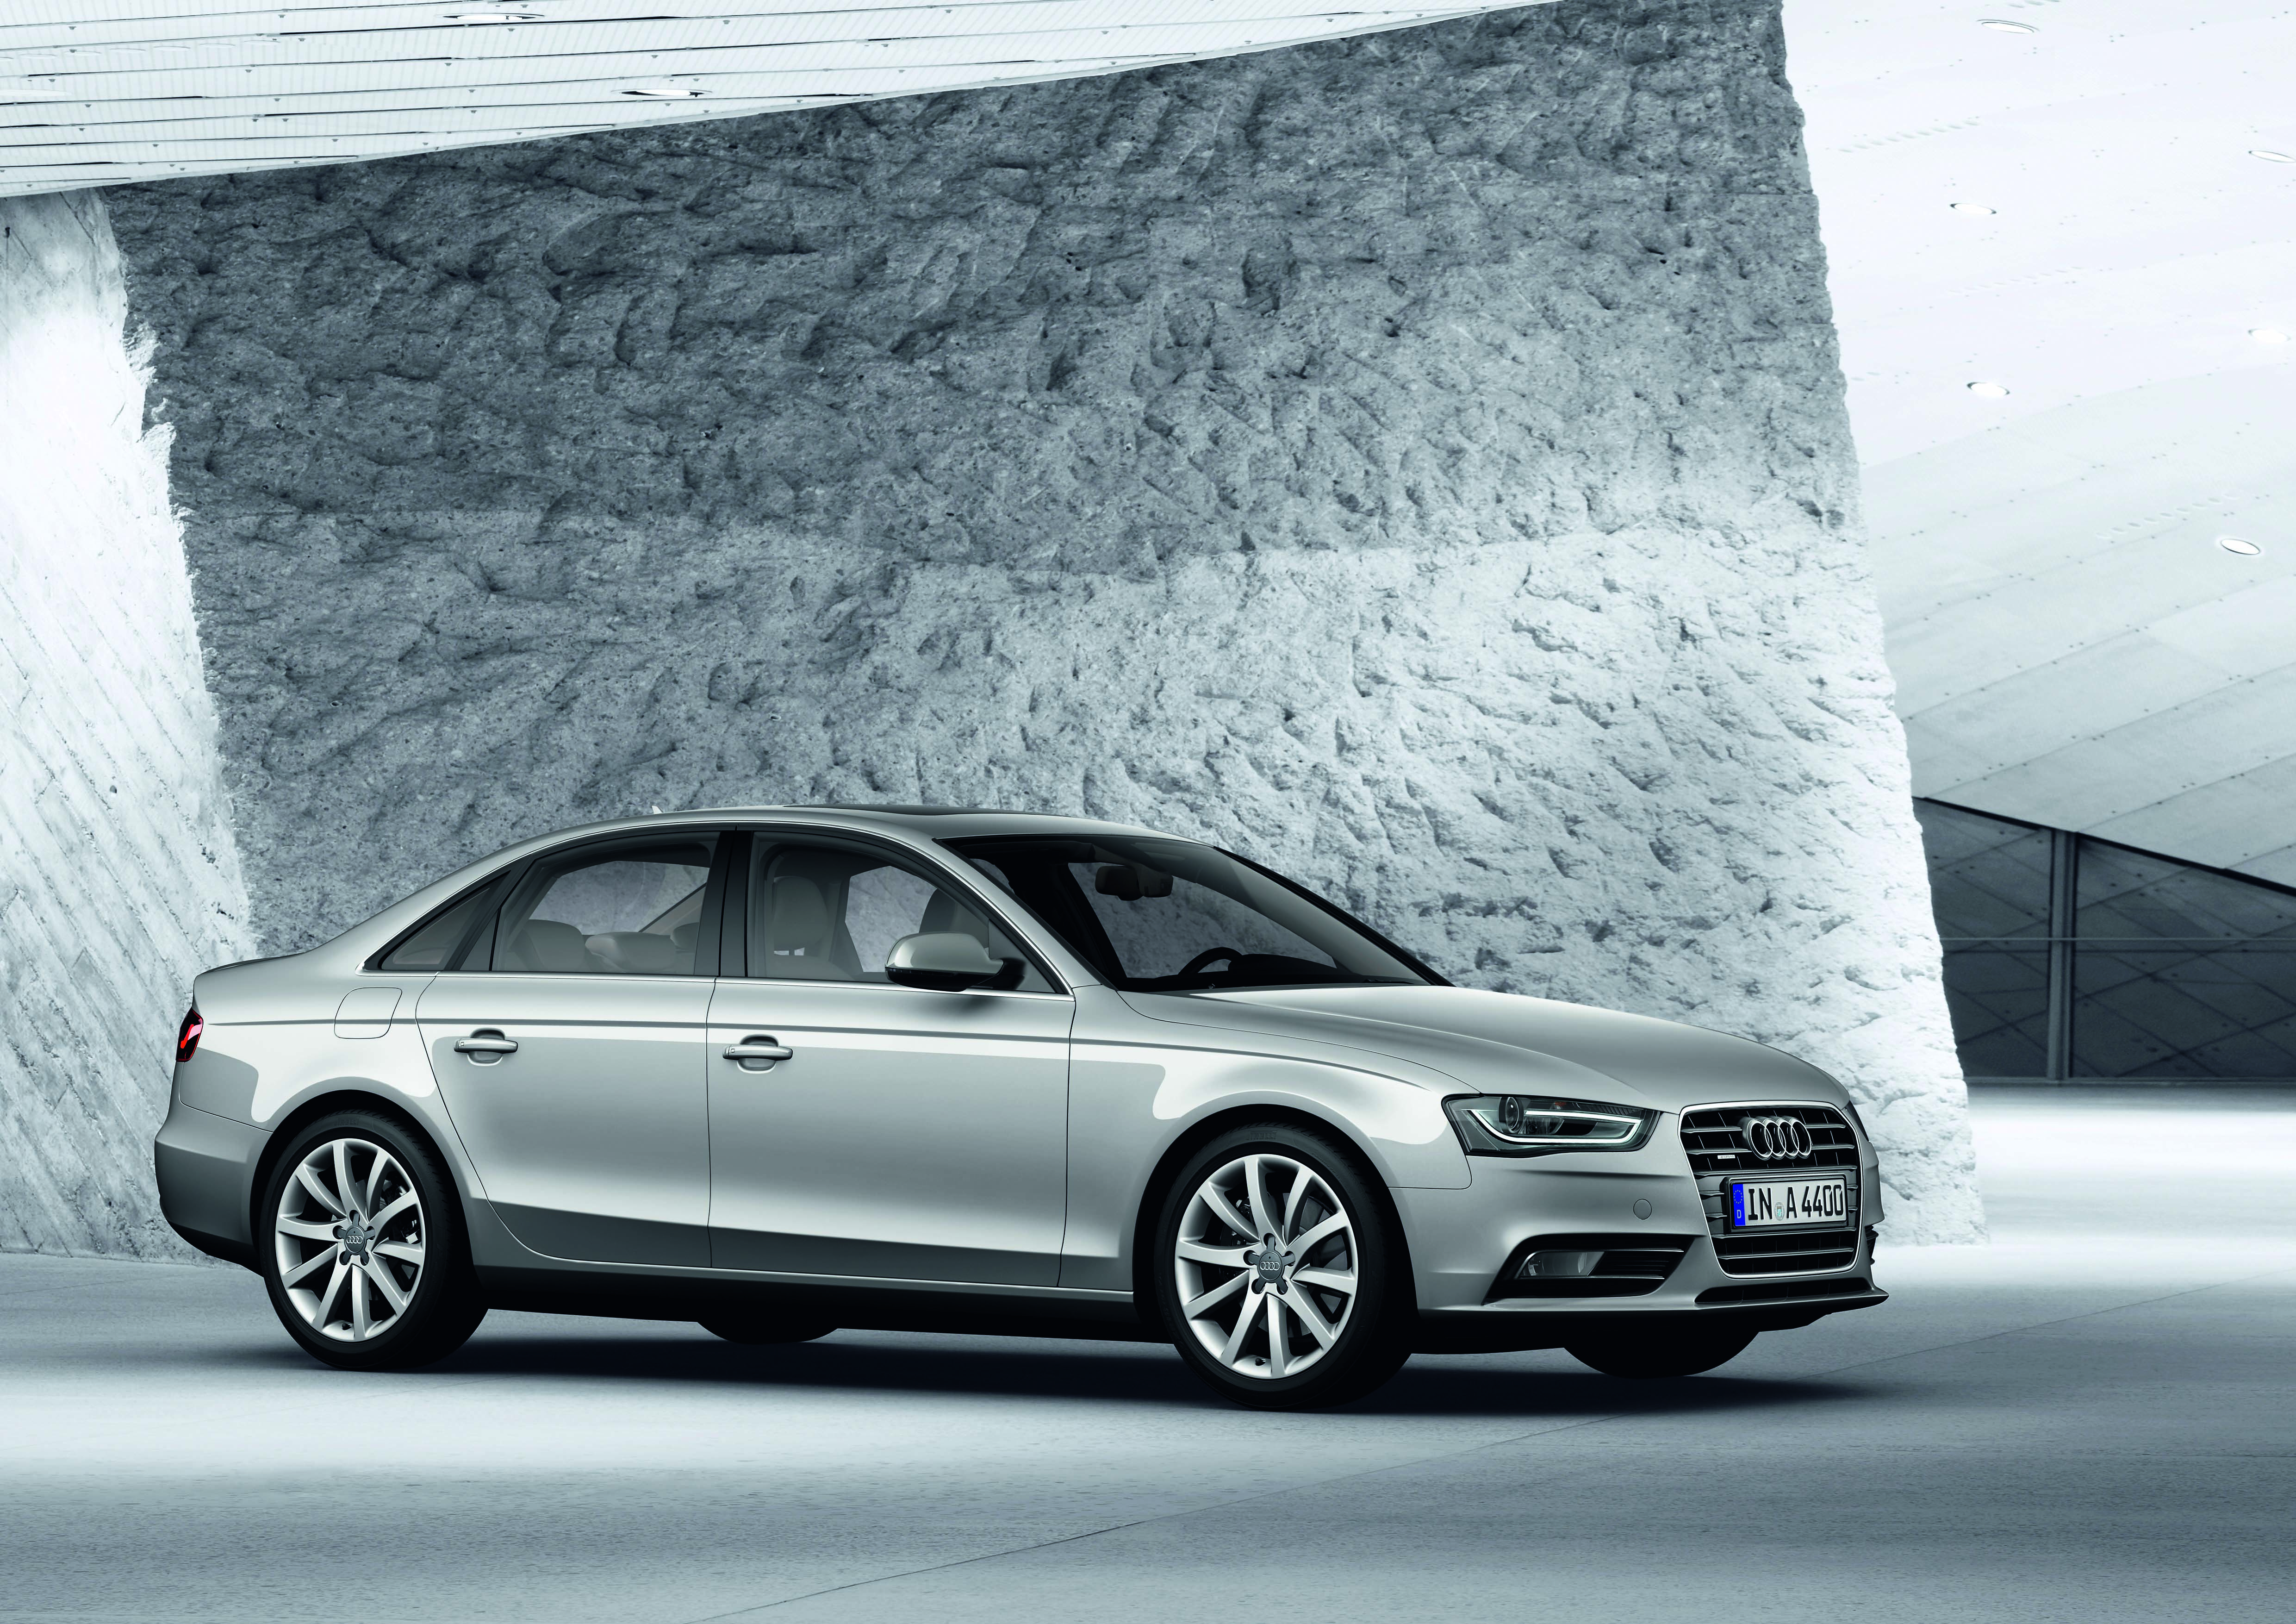 lifespan discussion people the pic found expected is of this questions price helpful cars audi what average